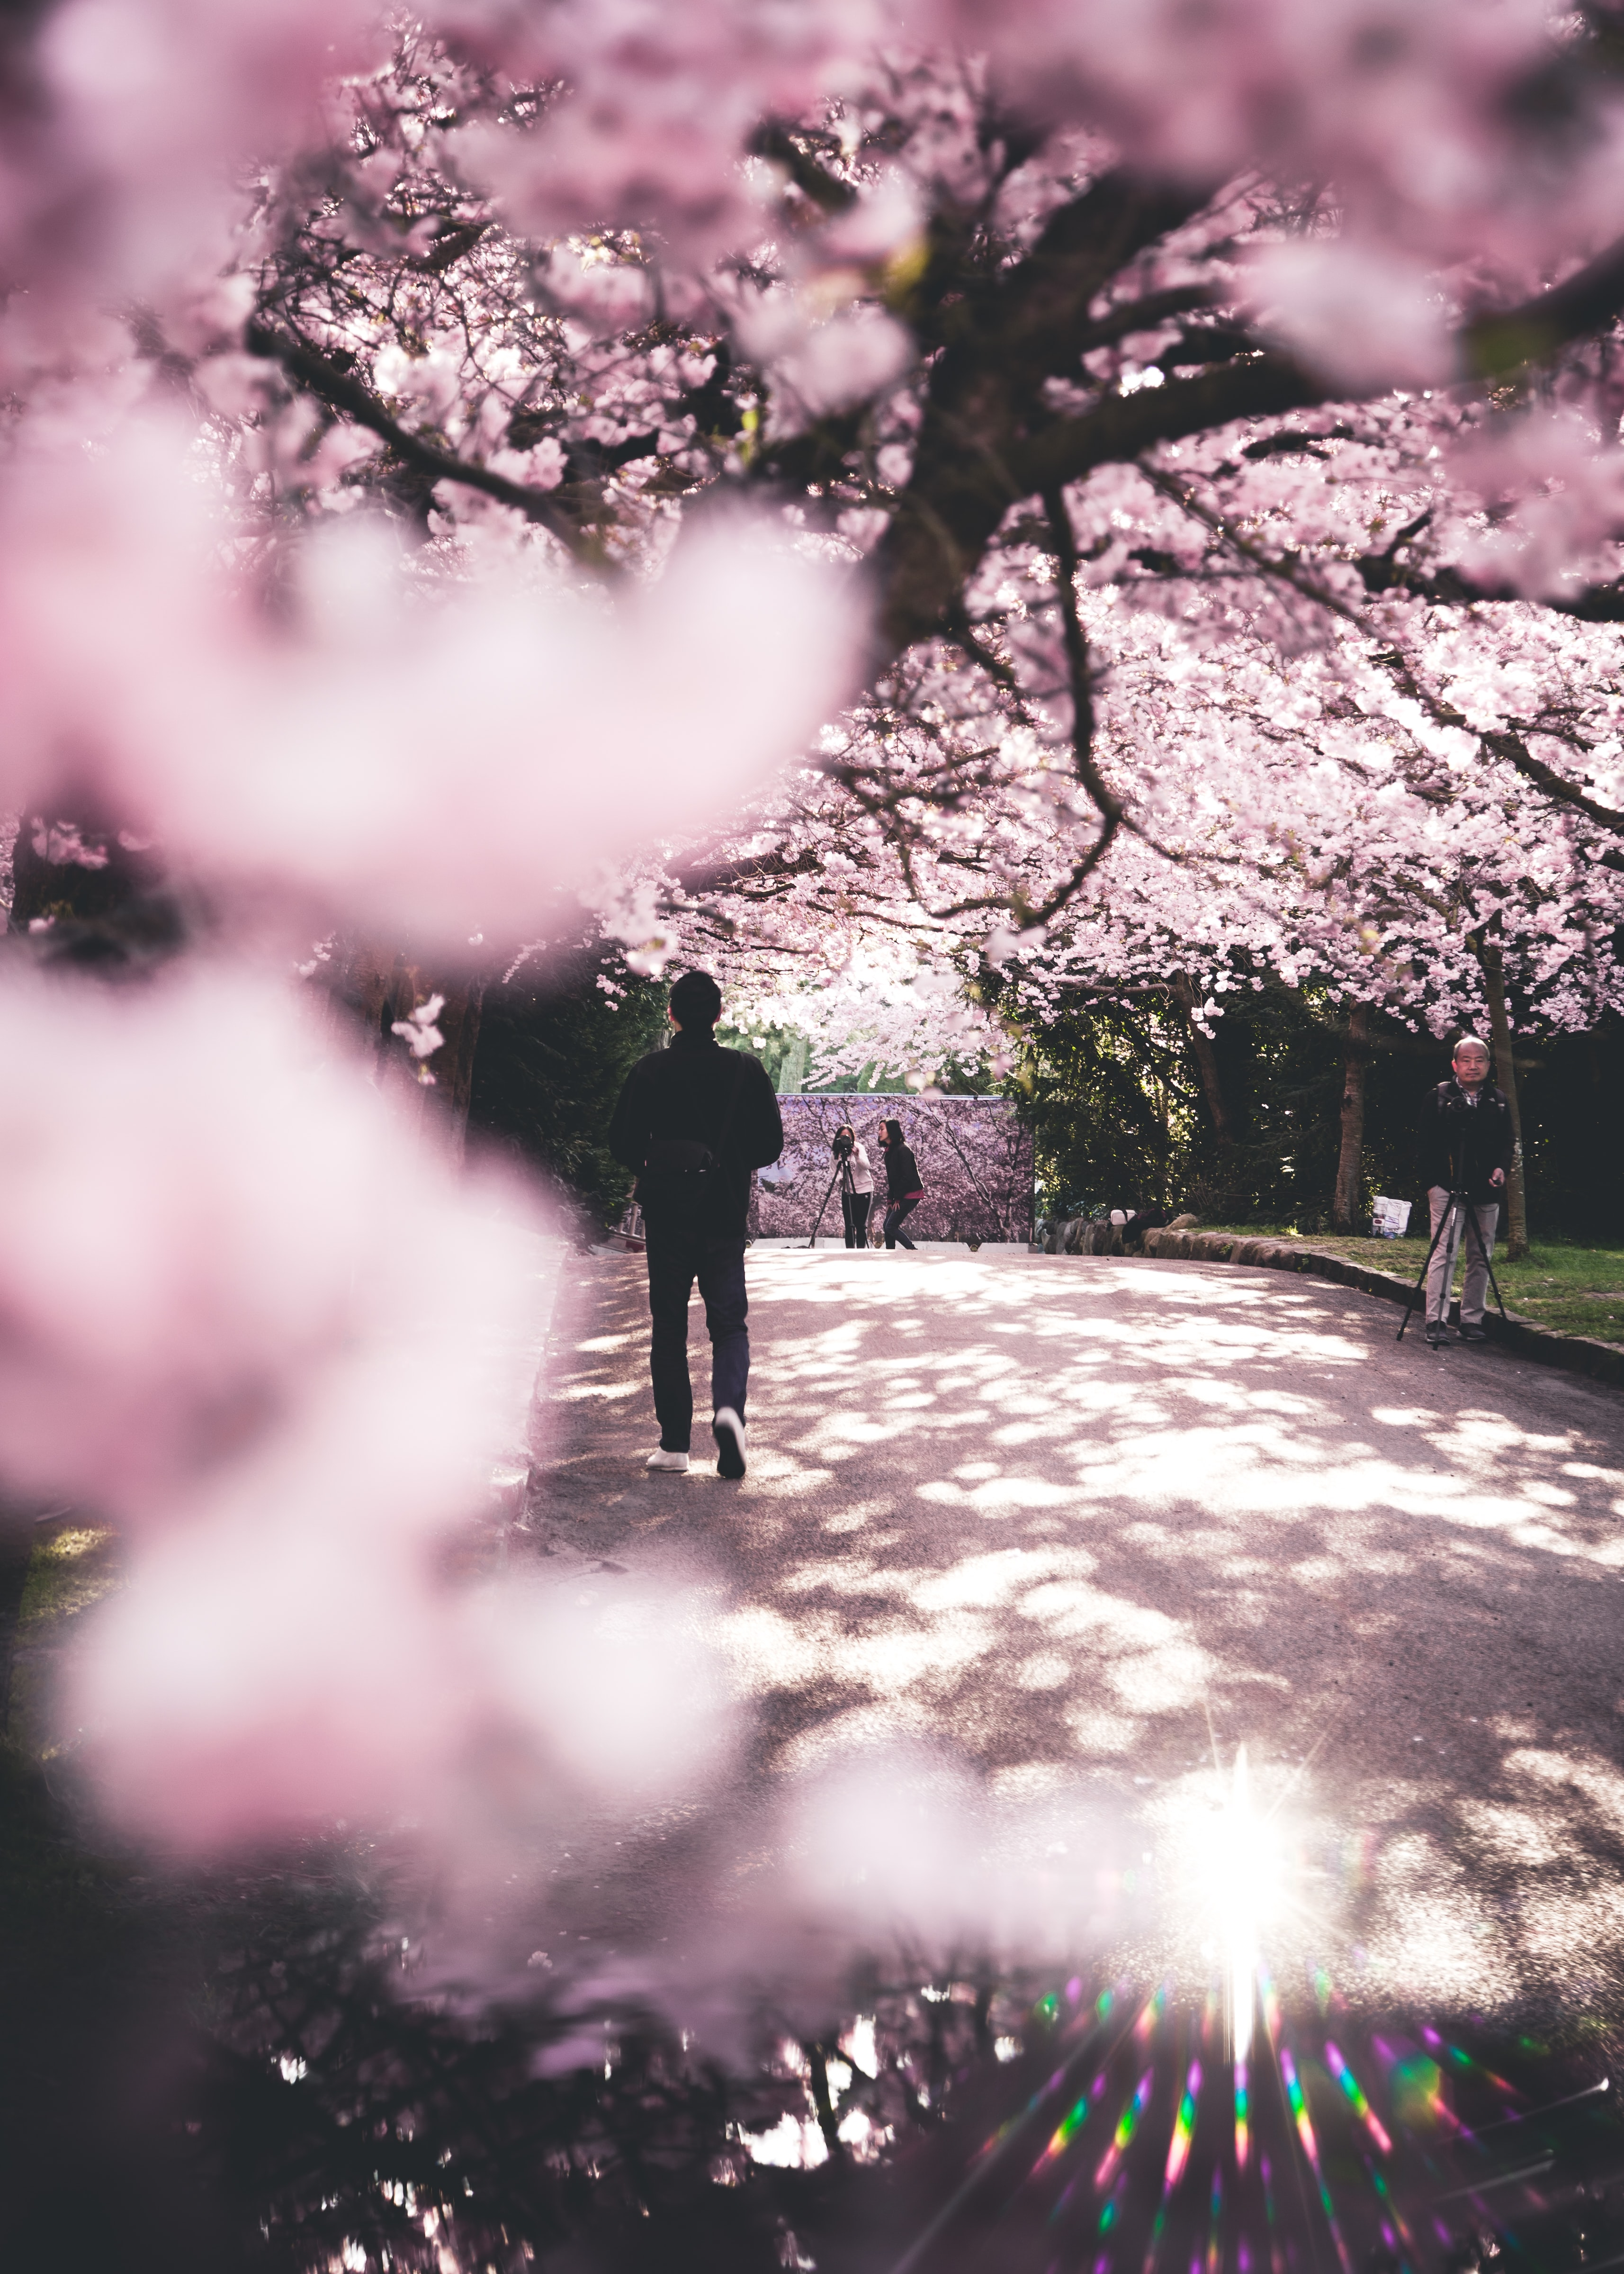 man walking under blossom trees